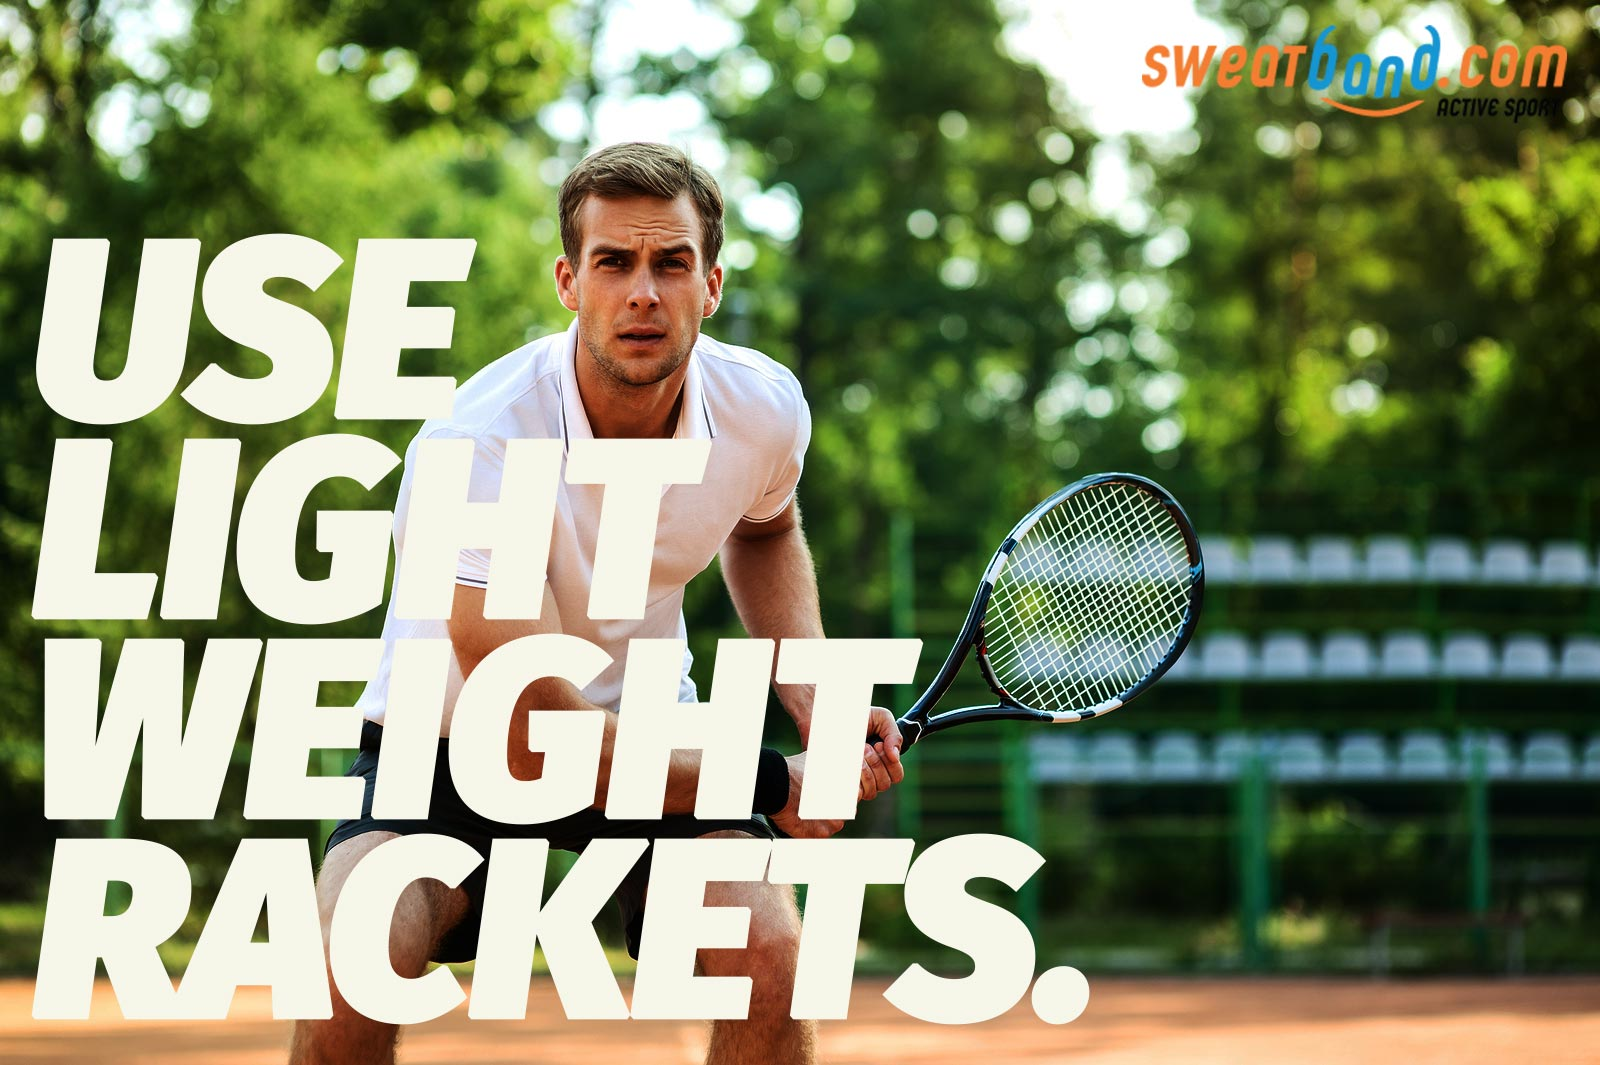 Try a more arm-friendly racket if you suffer from tennis elbow